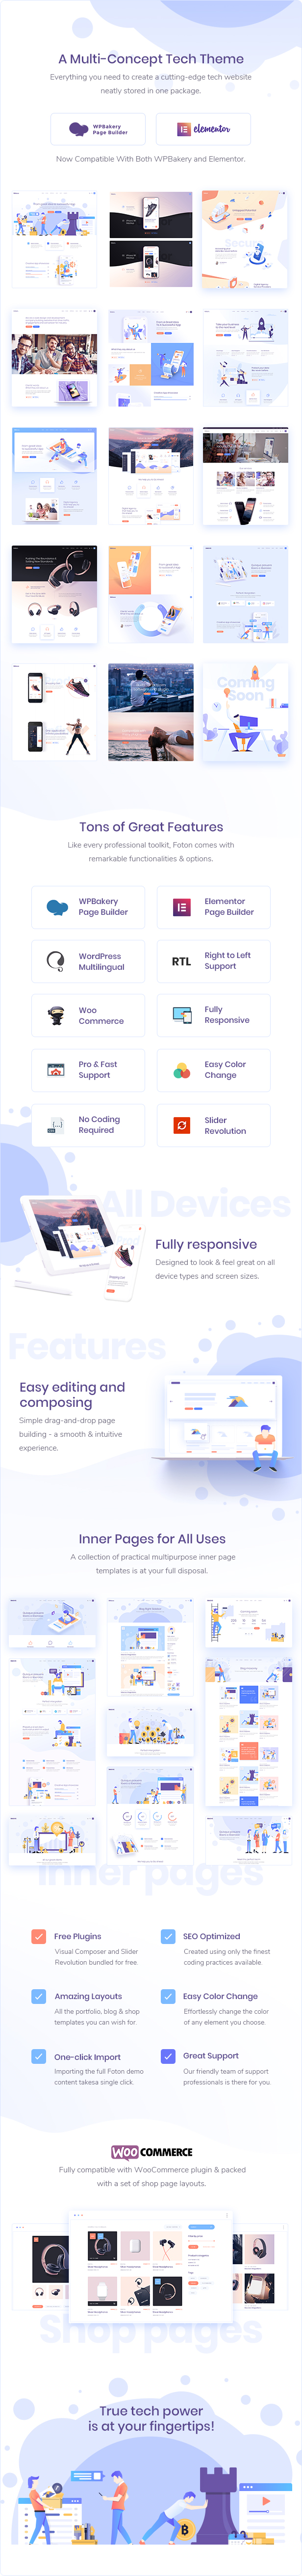 Foton - Software and App Landing Page Theme - 1